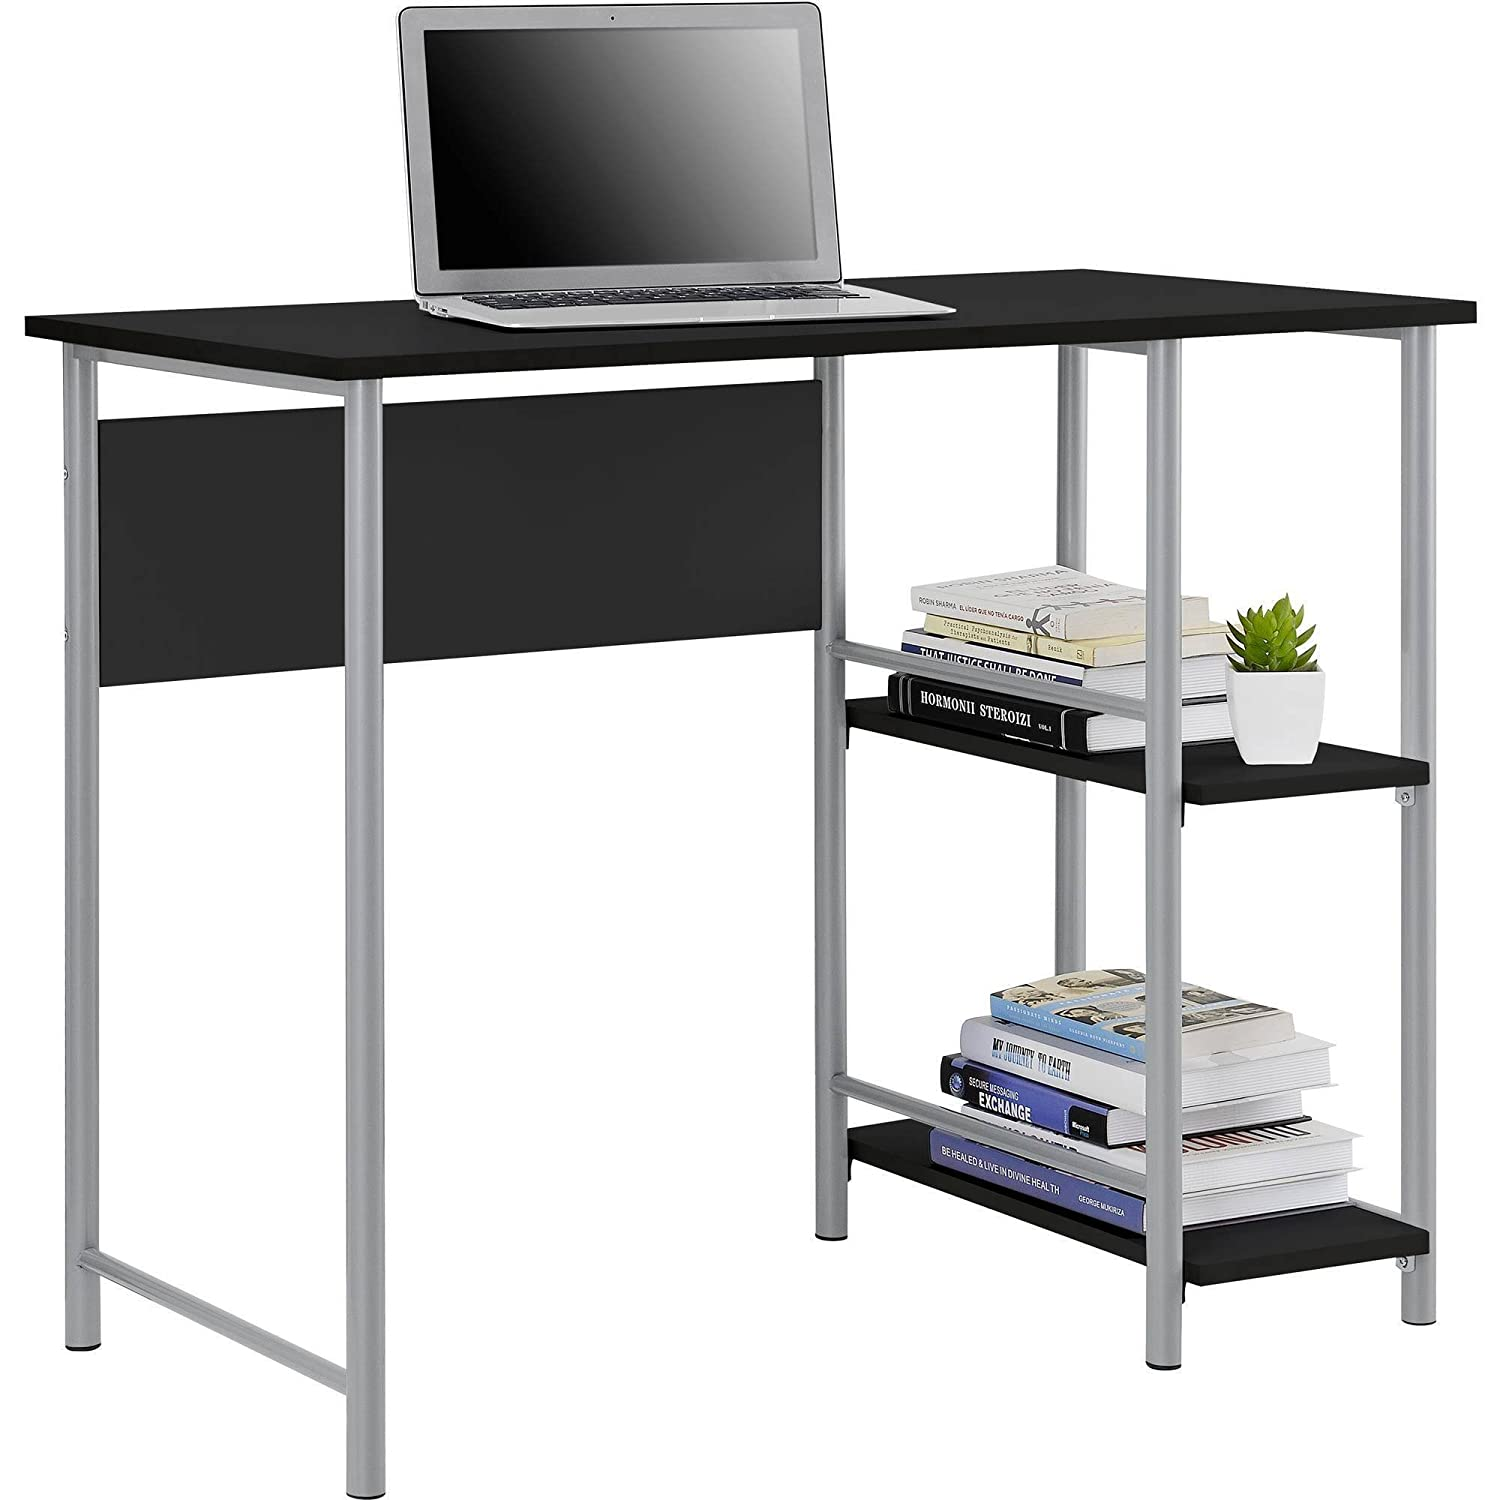 Student Desk In Simplistic Design With Large Workspace